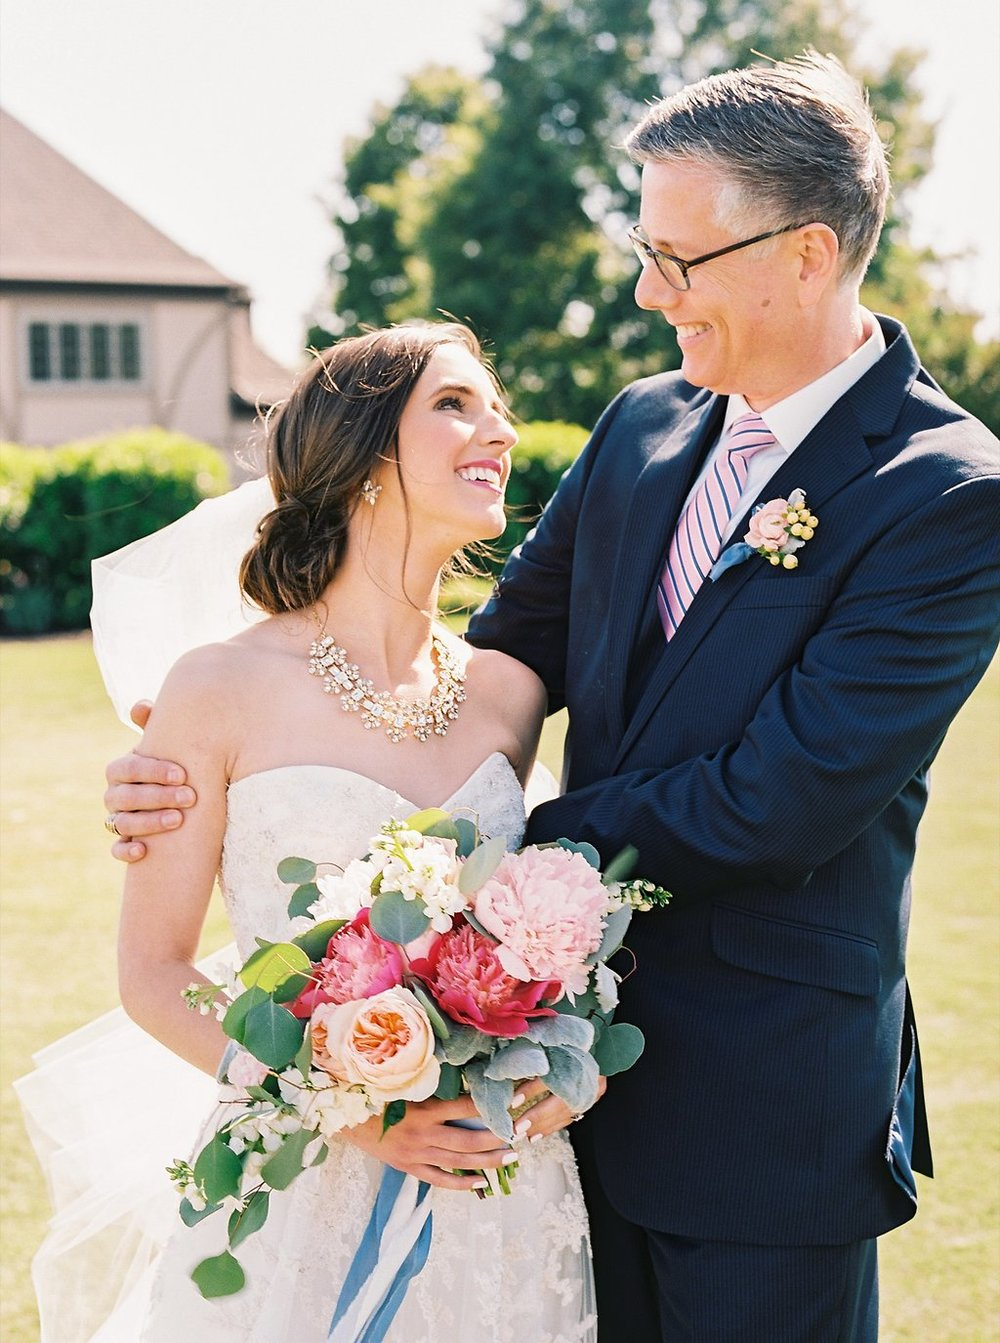 Sweet Bride and Father of the Bride Moment | Blush and Navy Wedding with Fuchsia, French Blue and Gold Accents | Simply Jessica Marie's Southern Wedding at Gettysvue Golf Course and Country Club in Knoxville Tennessee | Photo by Perry Vaile Photography